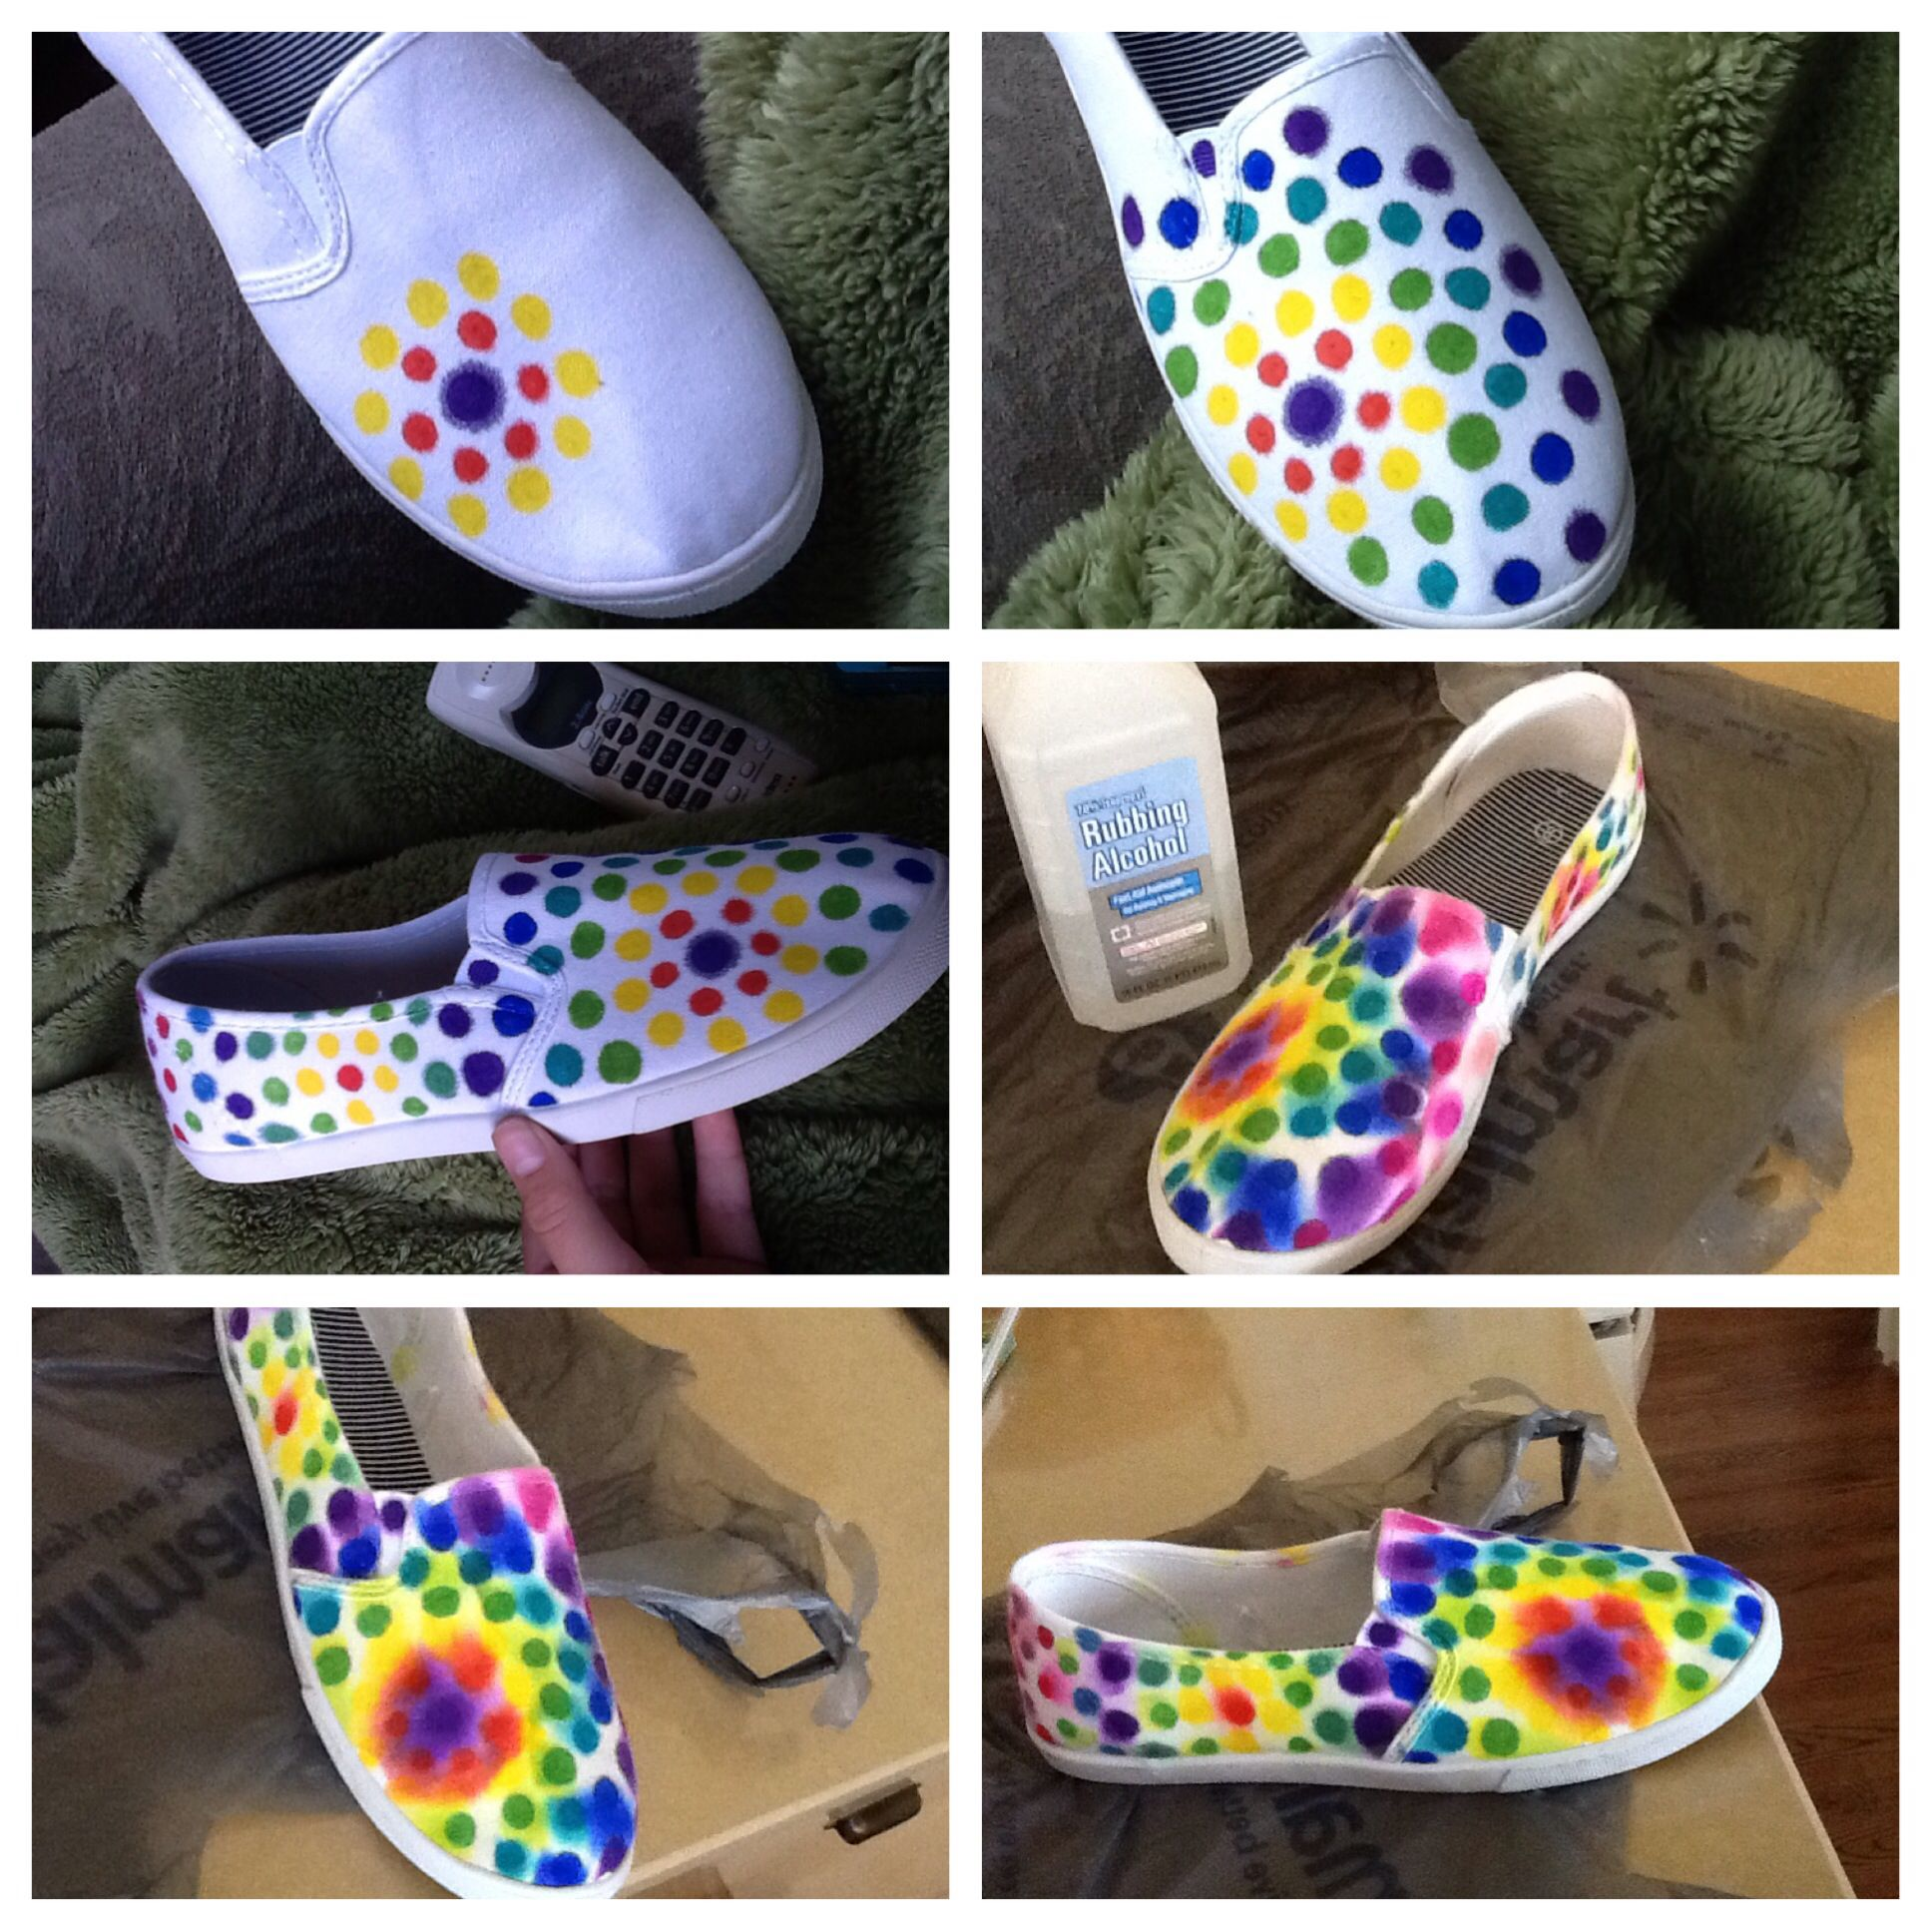 0a43c3e2a10d DIY sharpie and rubbing alcohol shoes 1) draw on shoes with sharpies 2) use  a dropper with rubbing alcohol and drop on shoes 3) wait to dry